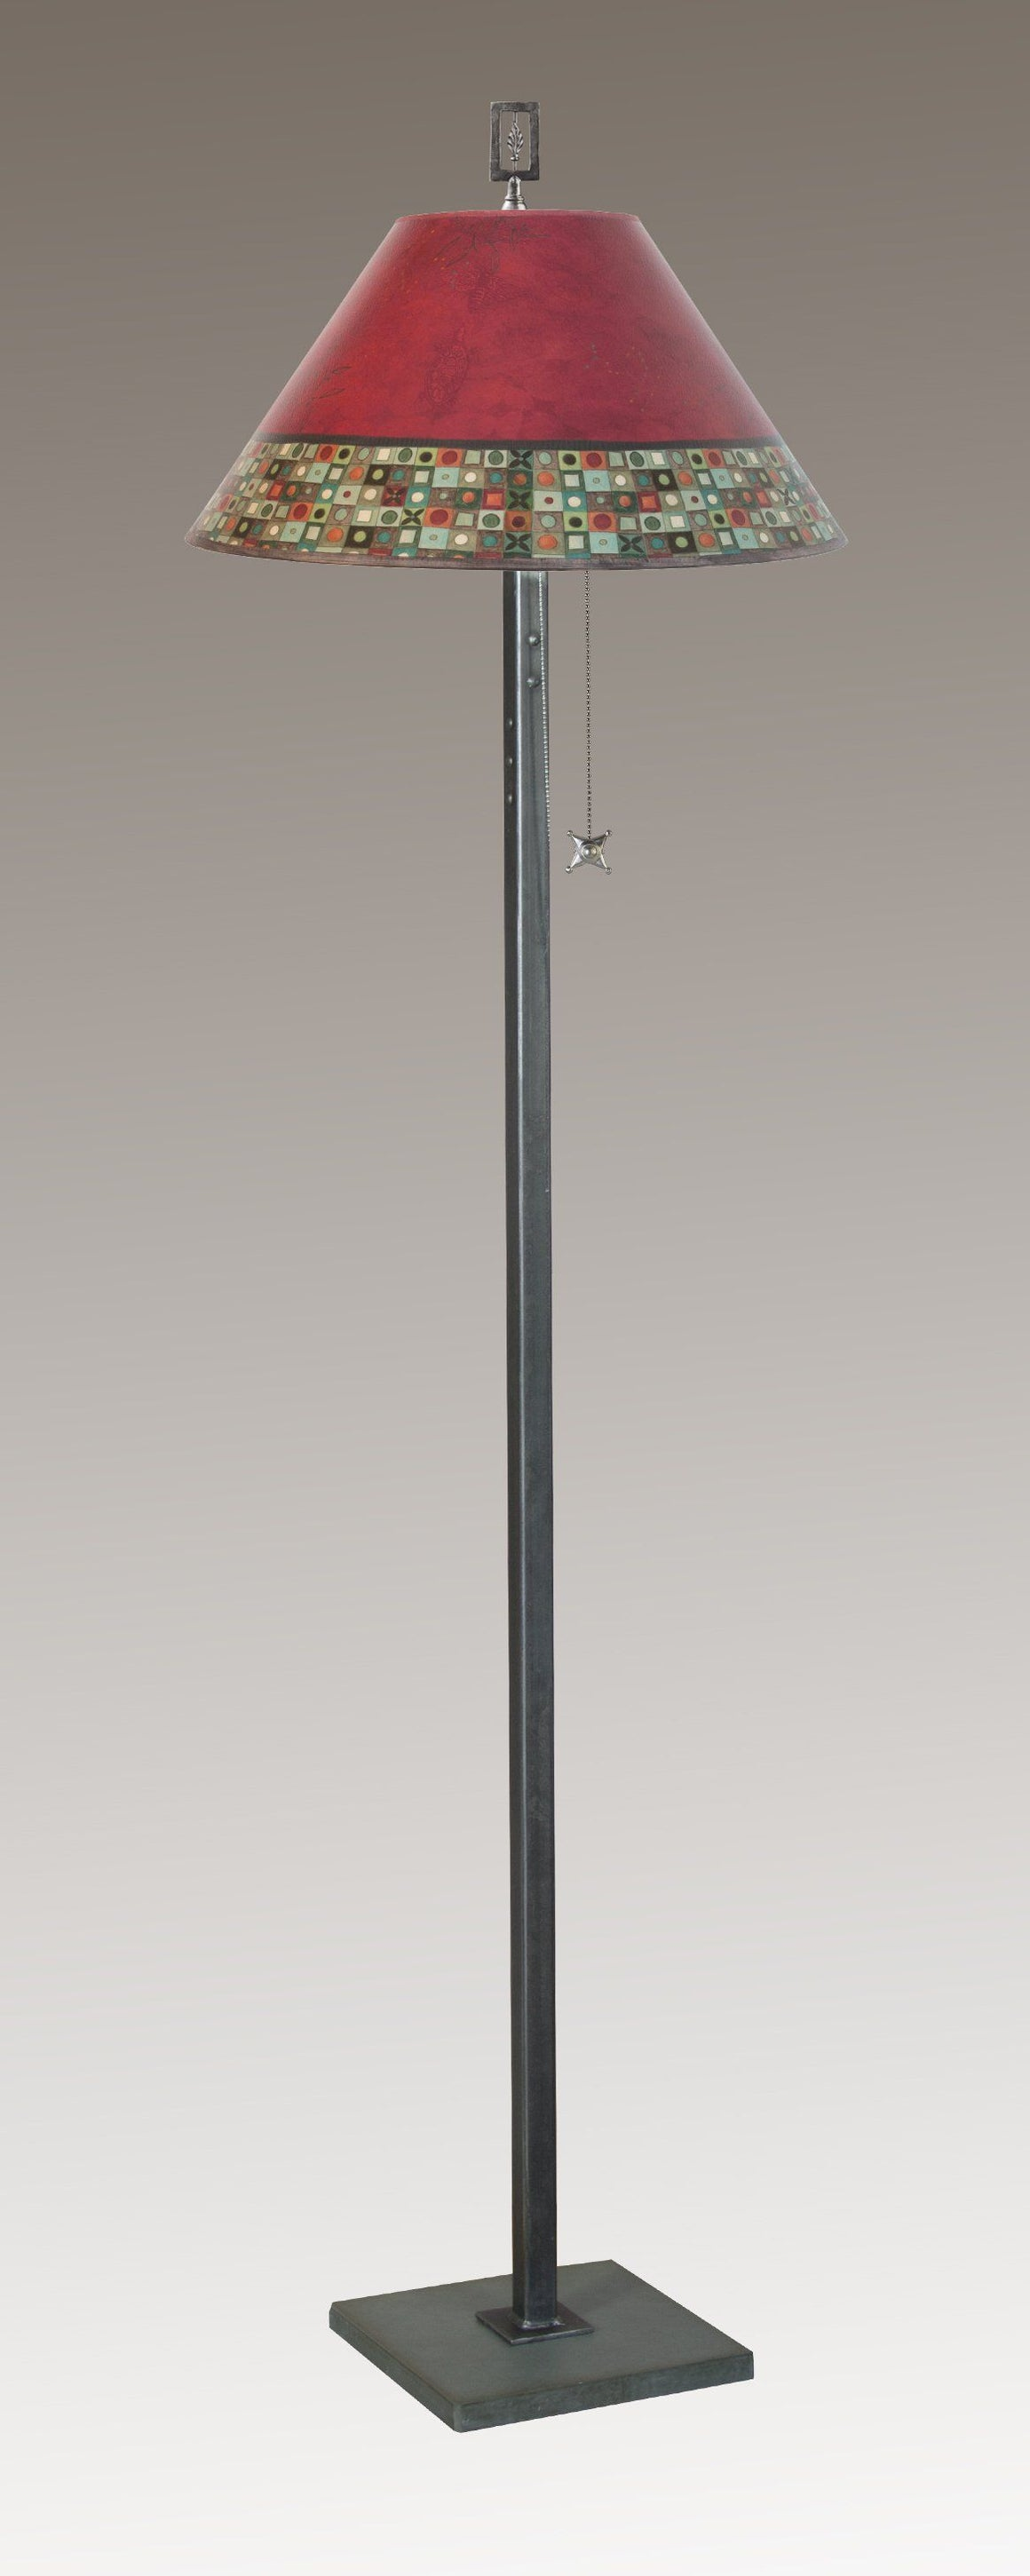 Steel Floor Lamp on Italian Marble with Large Conical Shade in Red Mosaic